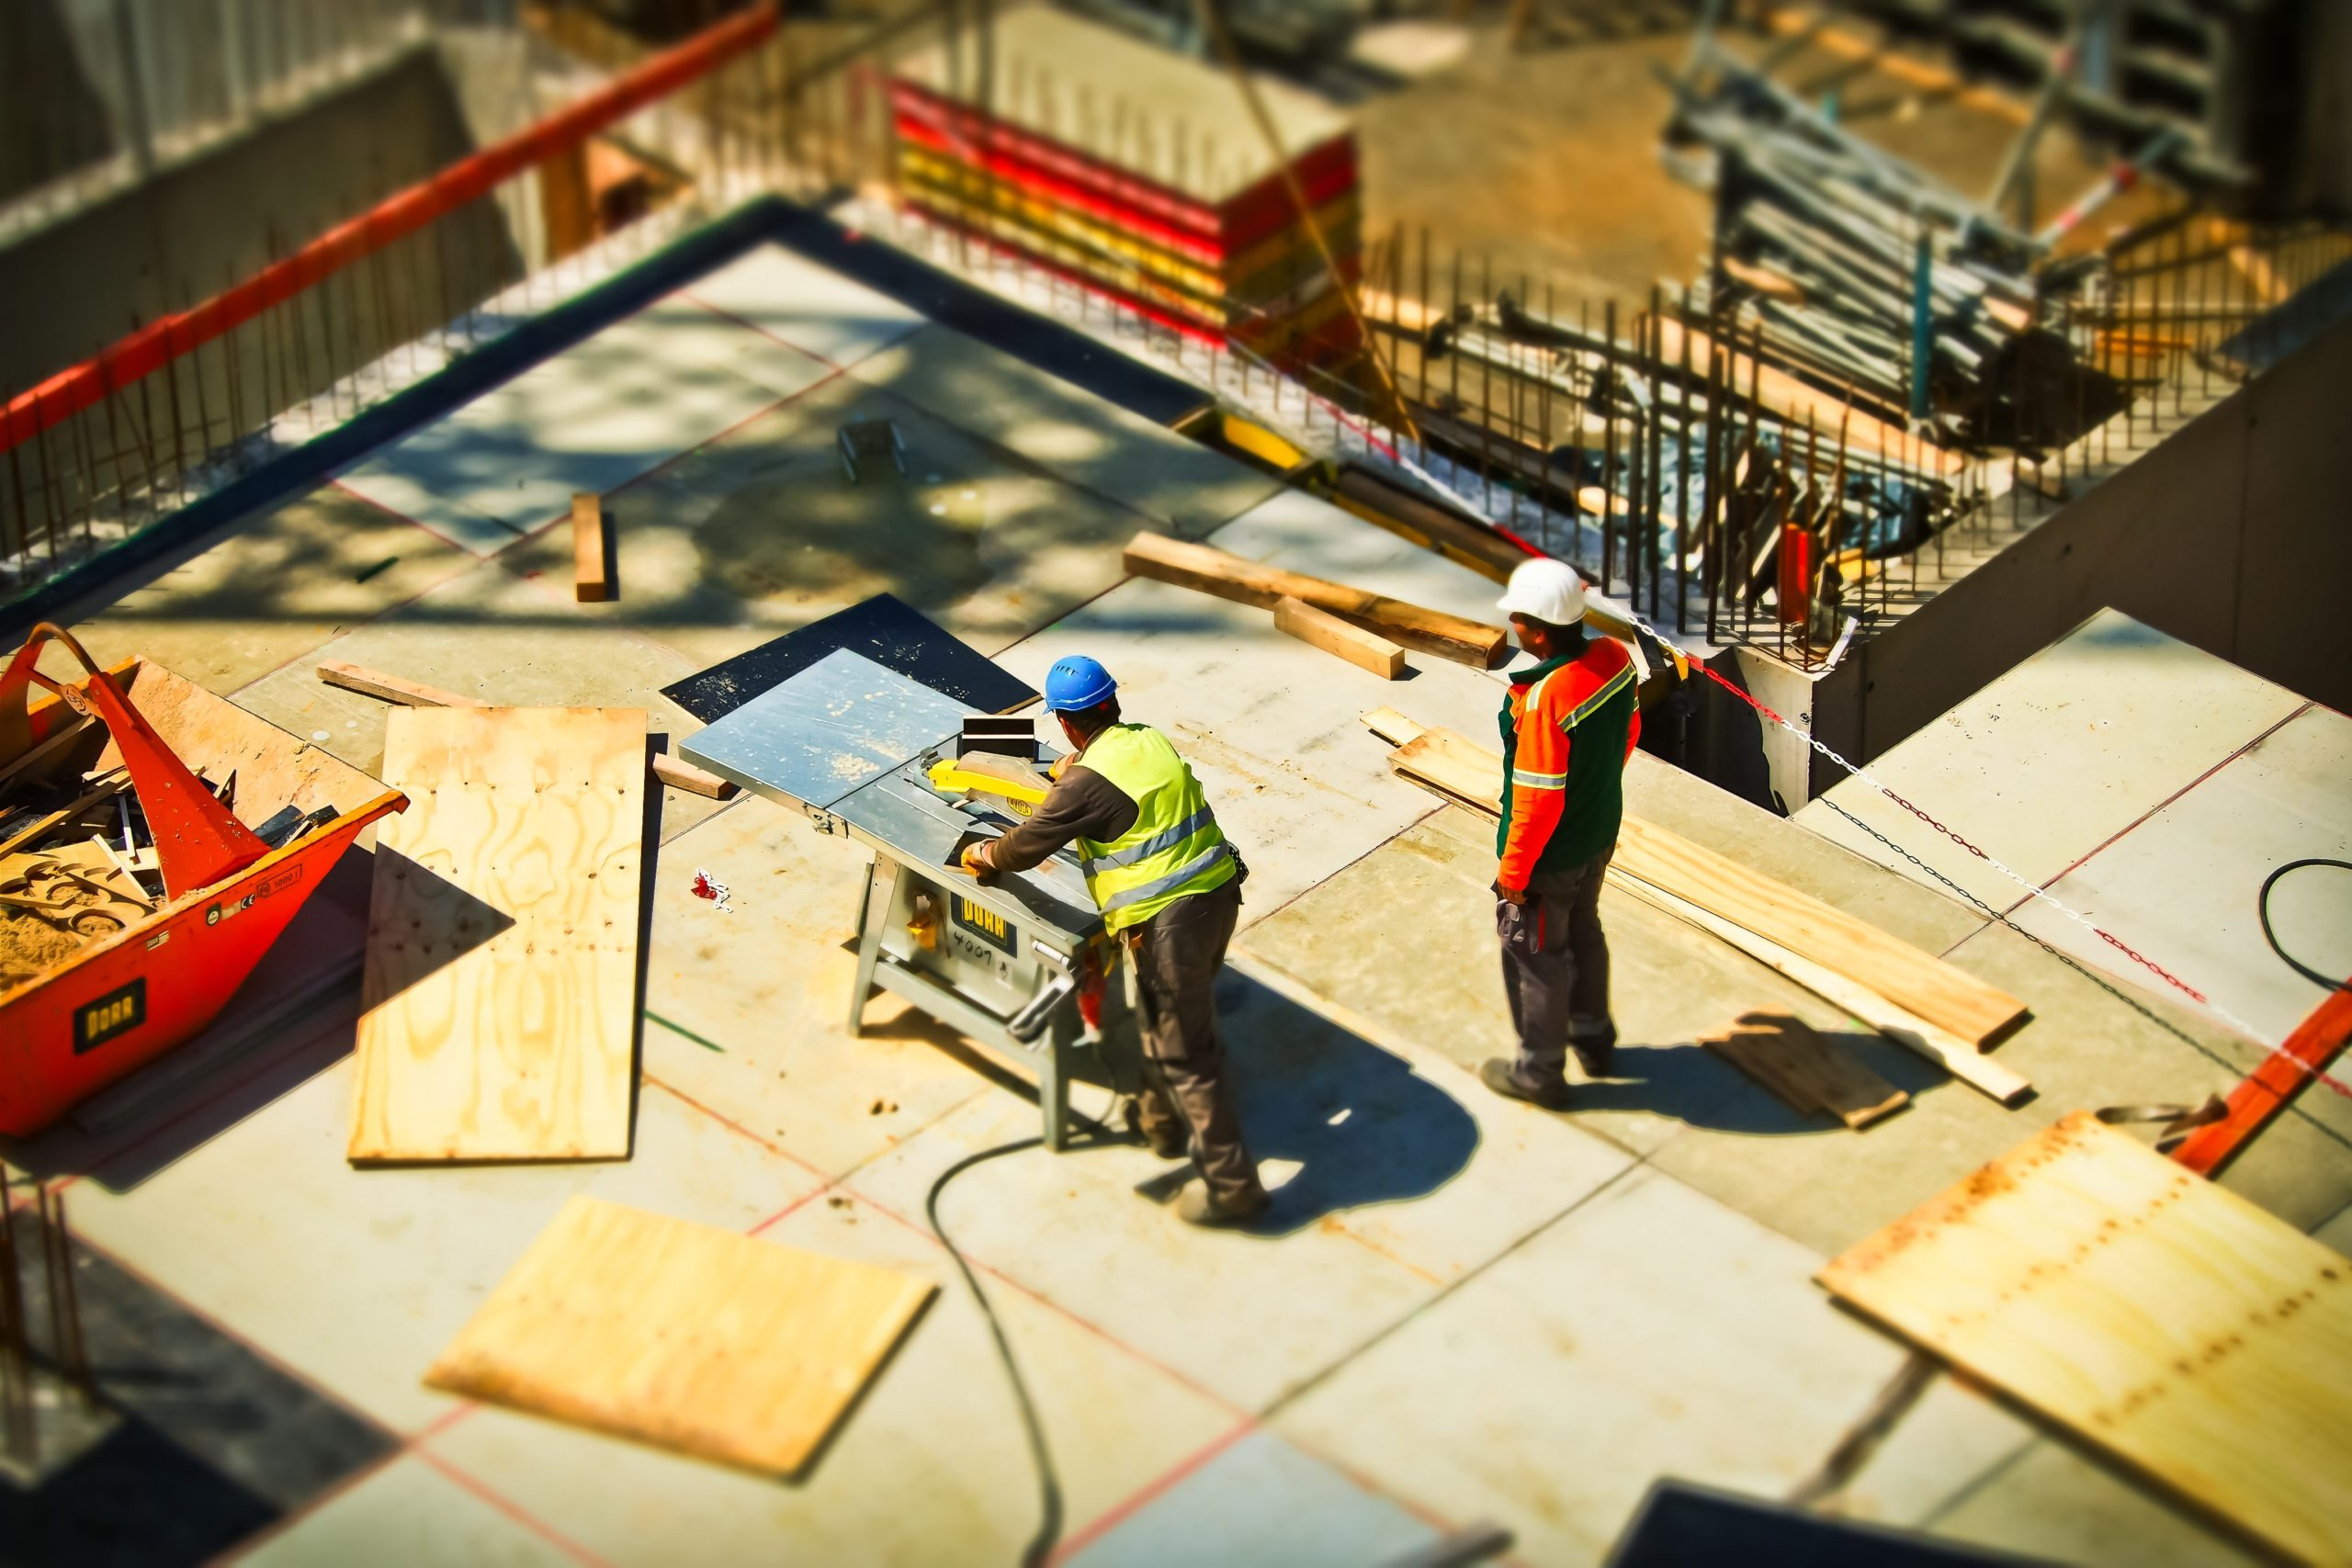 2-man-on-construction-site-during-daytime-159306